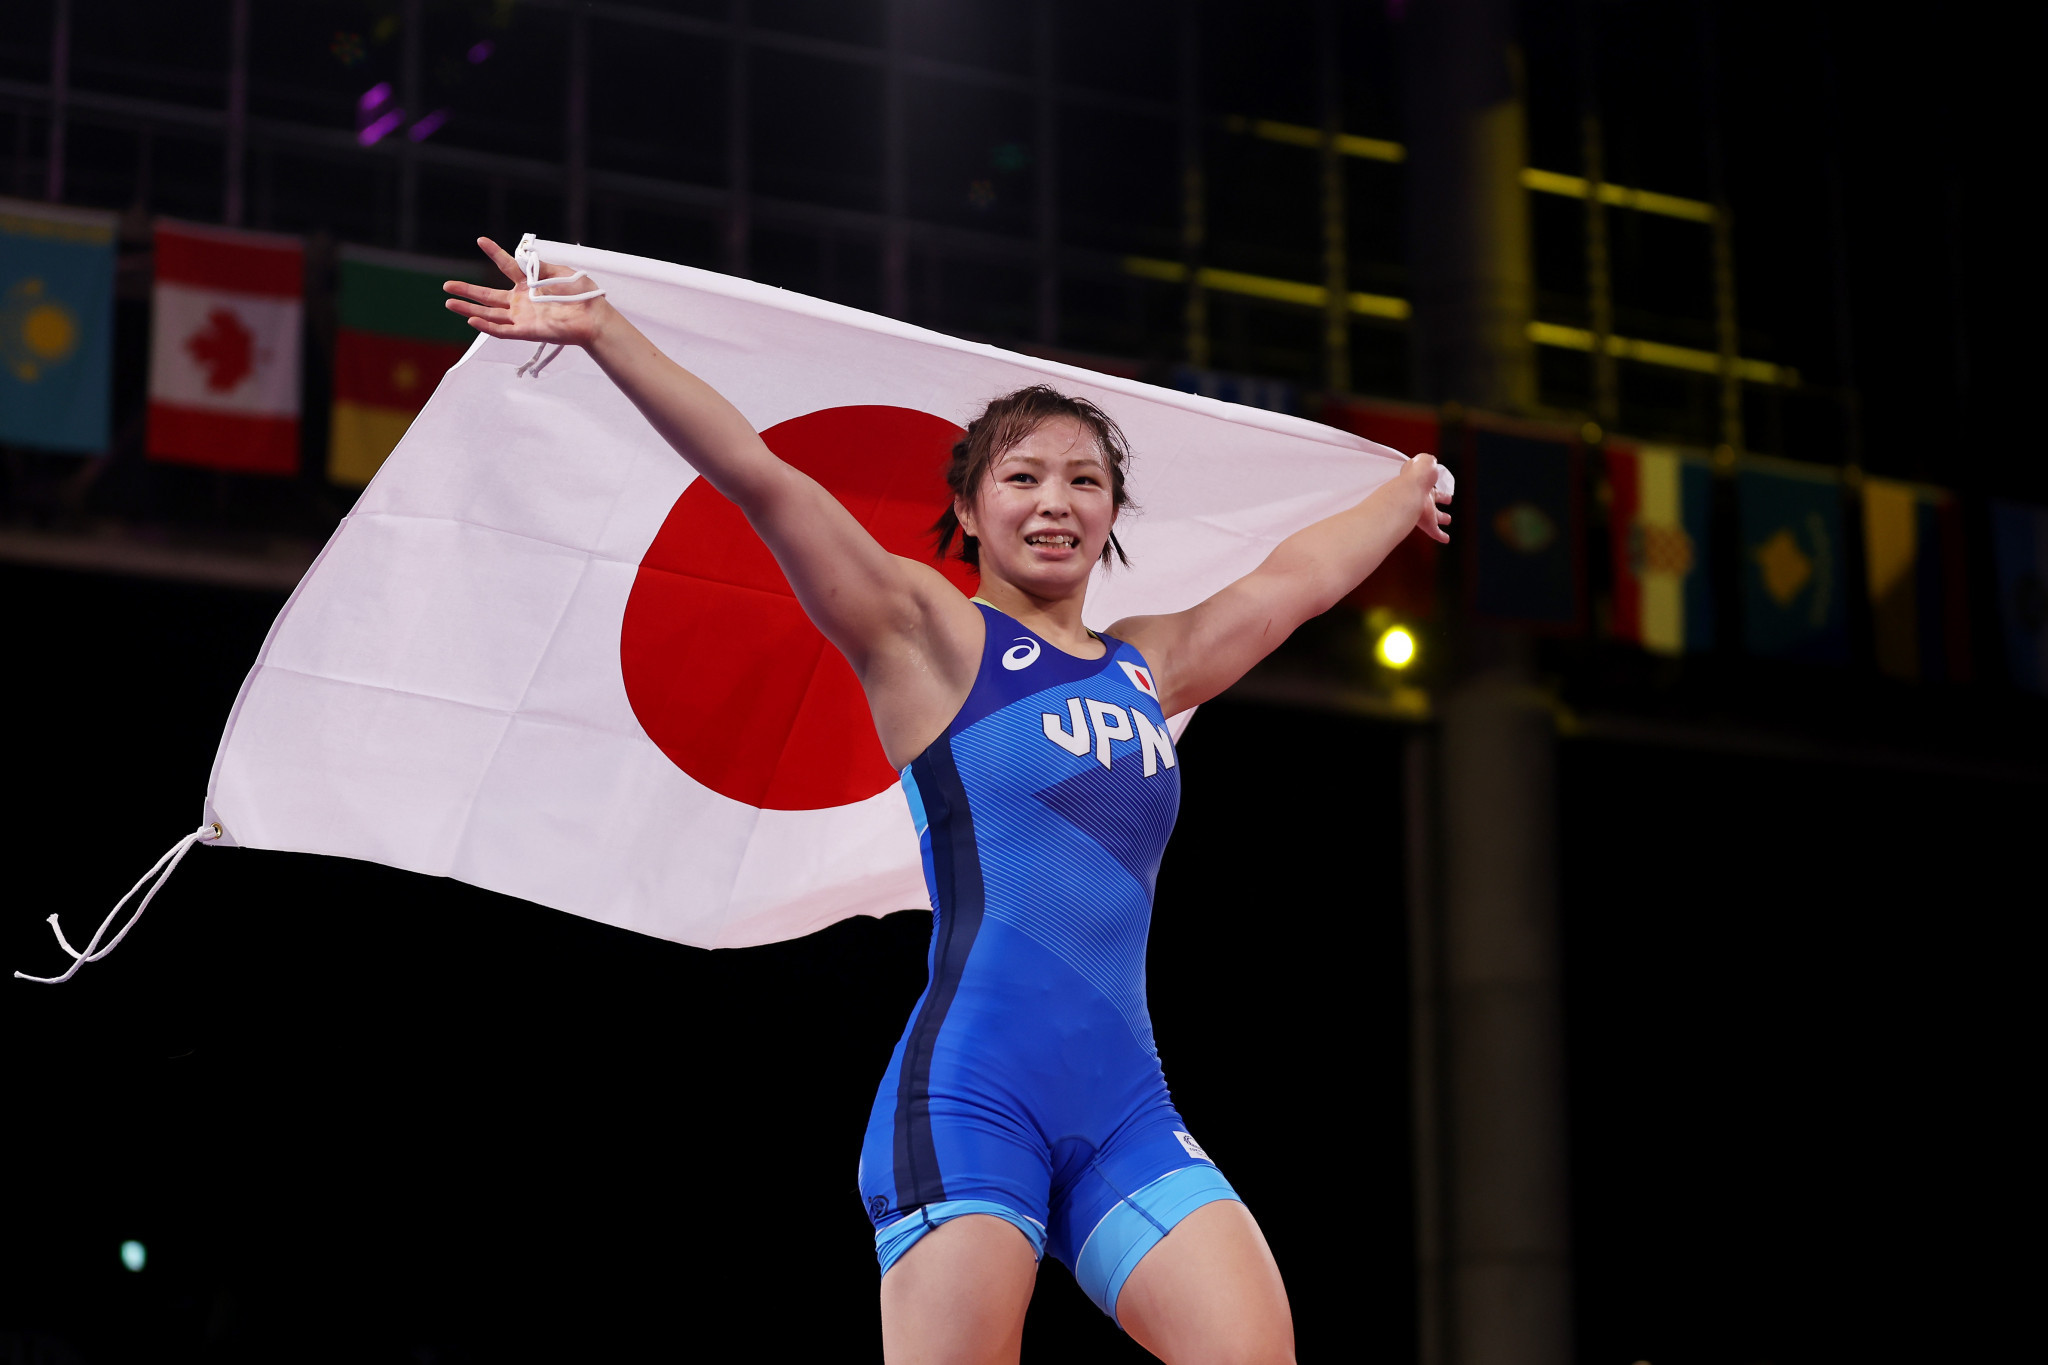 Kawai succeeds sister as Olympic champion with women's 62kg wrestling triumph